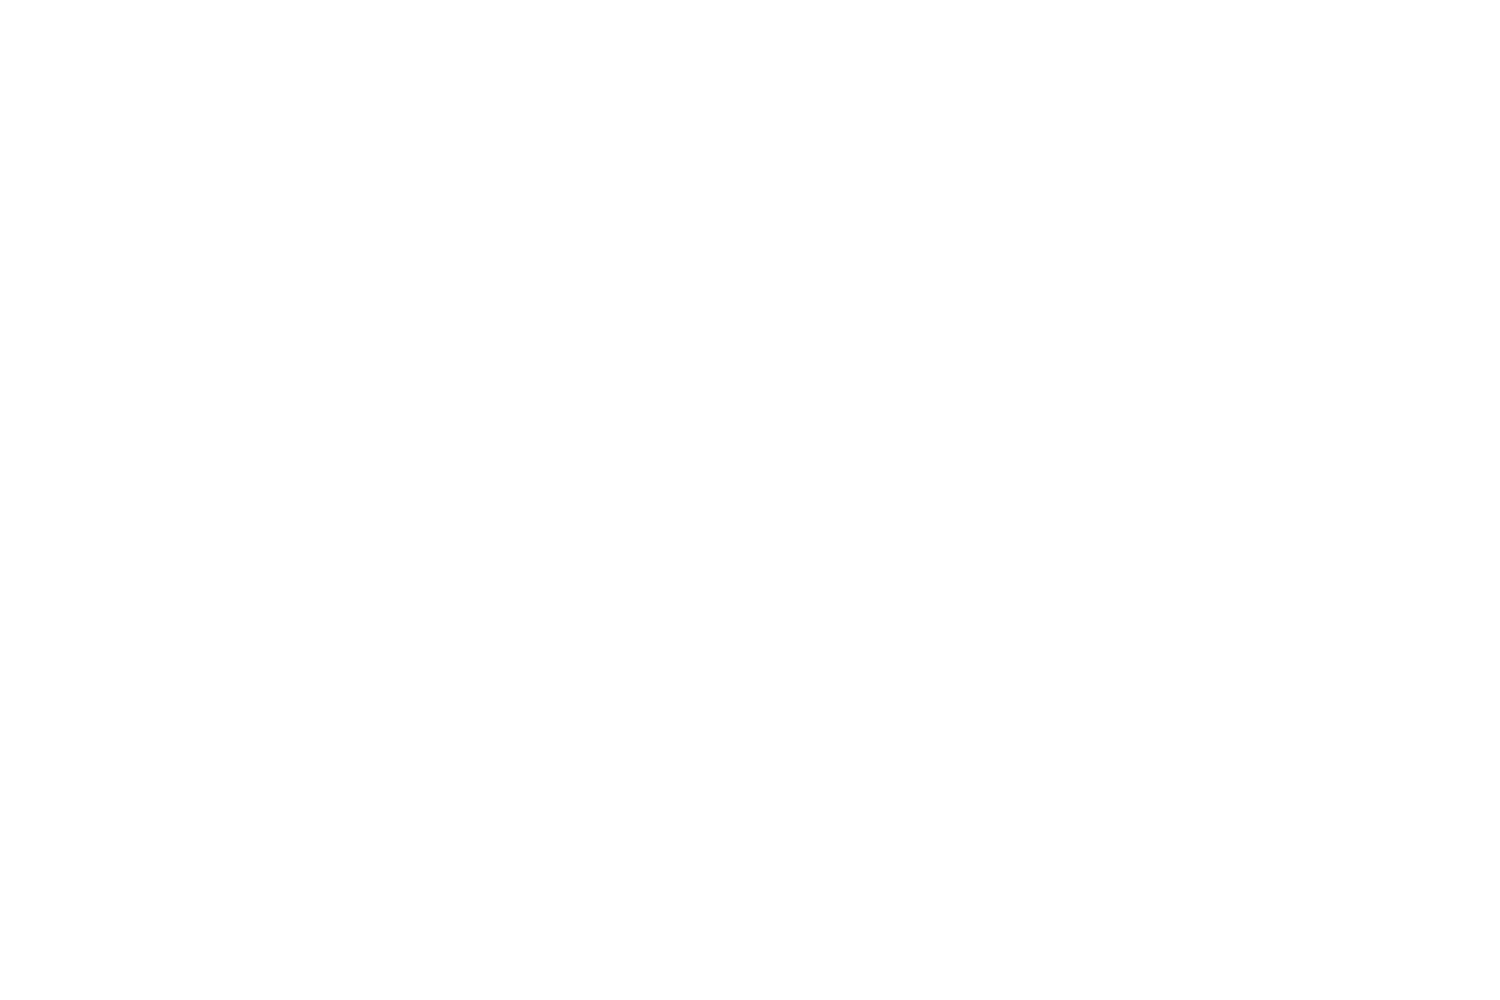 Ghodsy